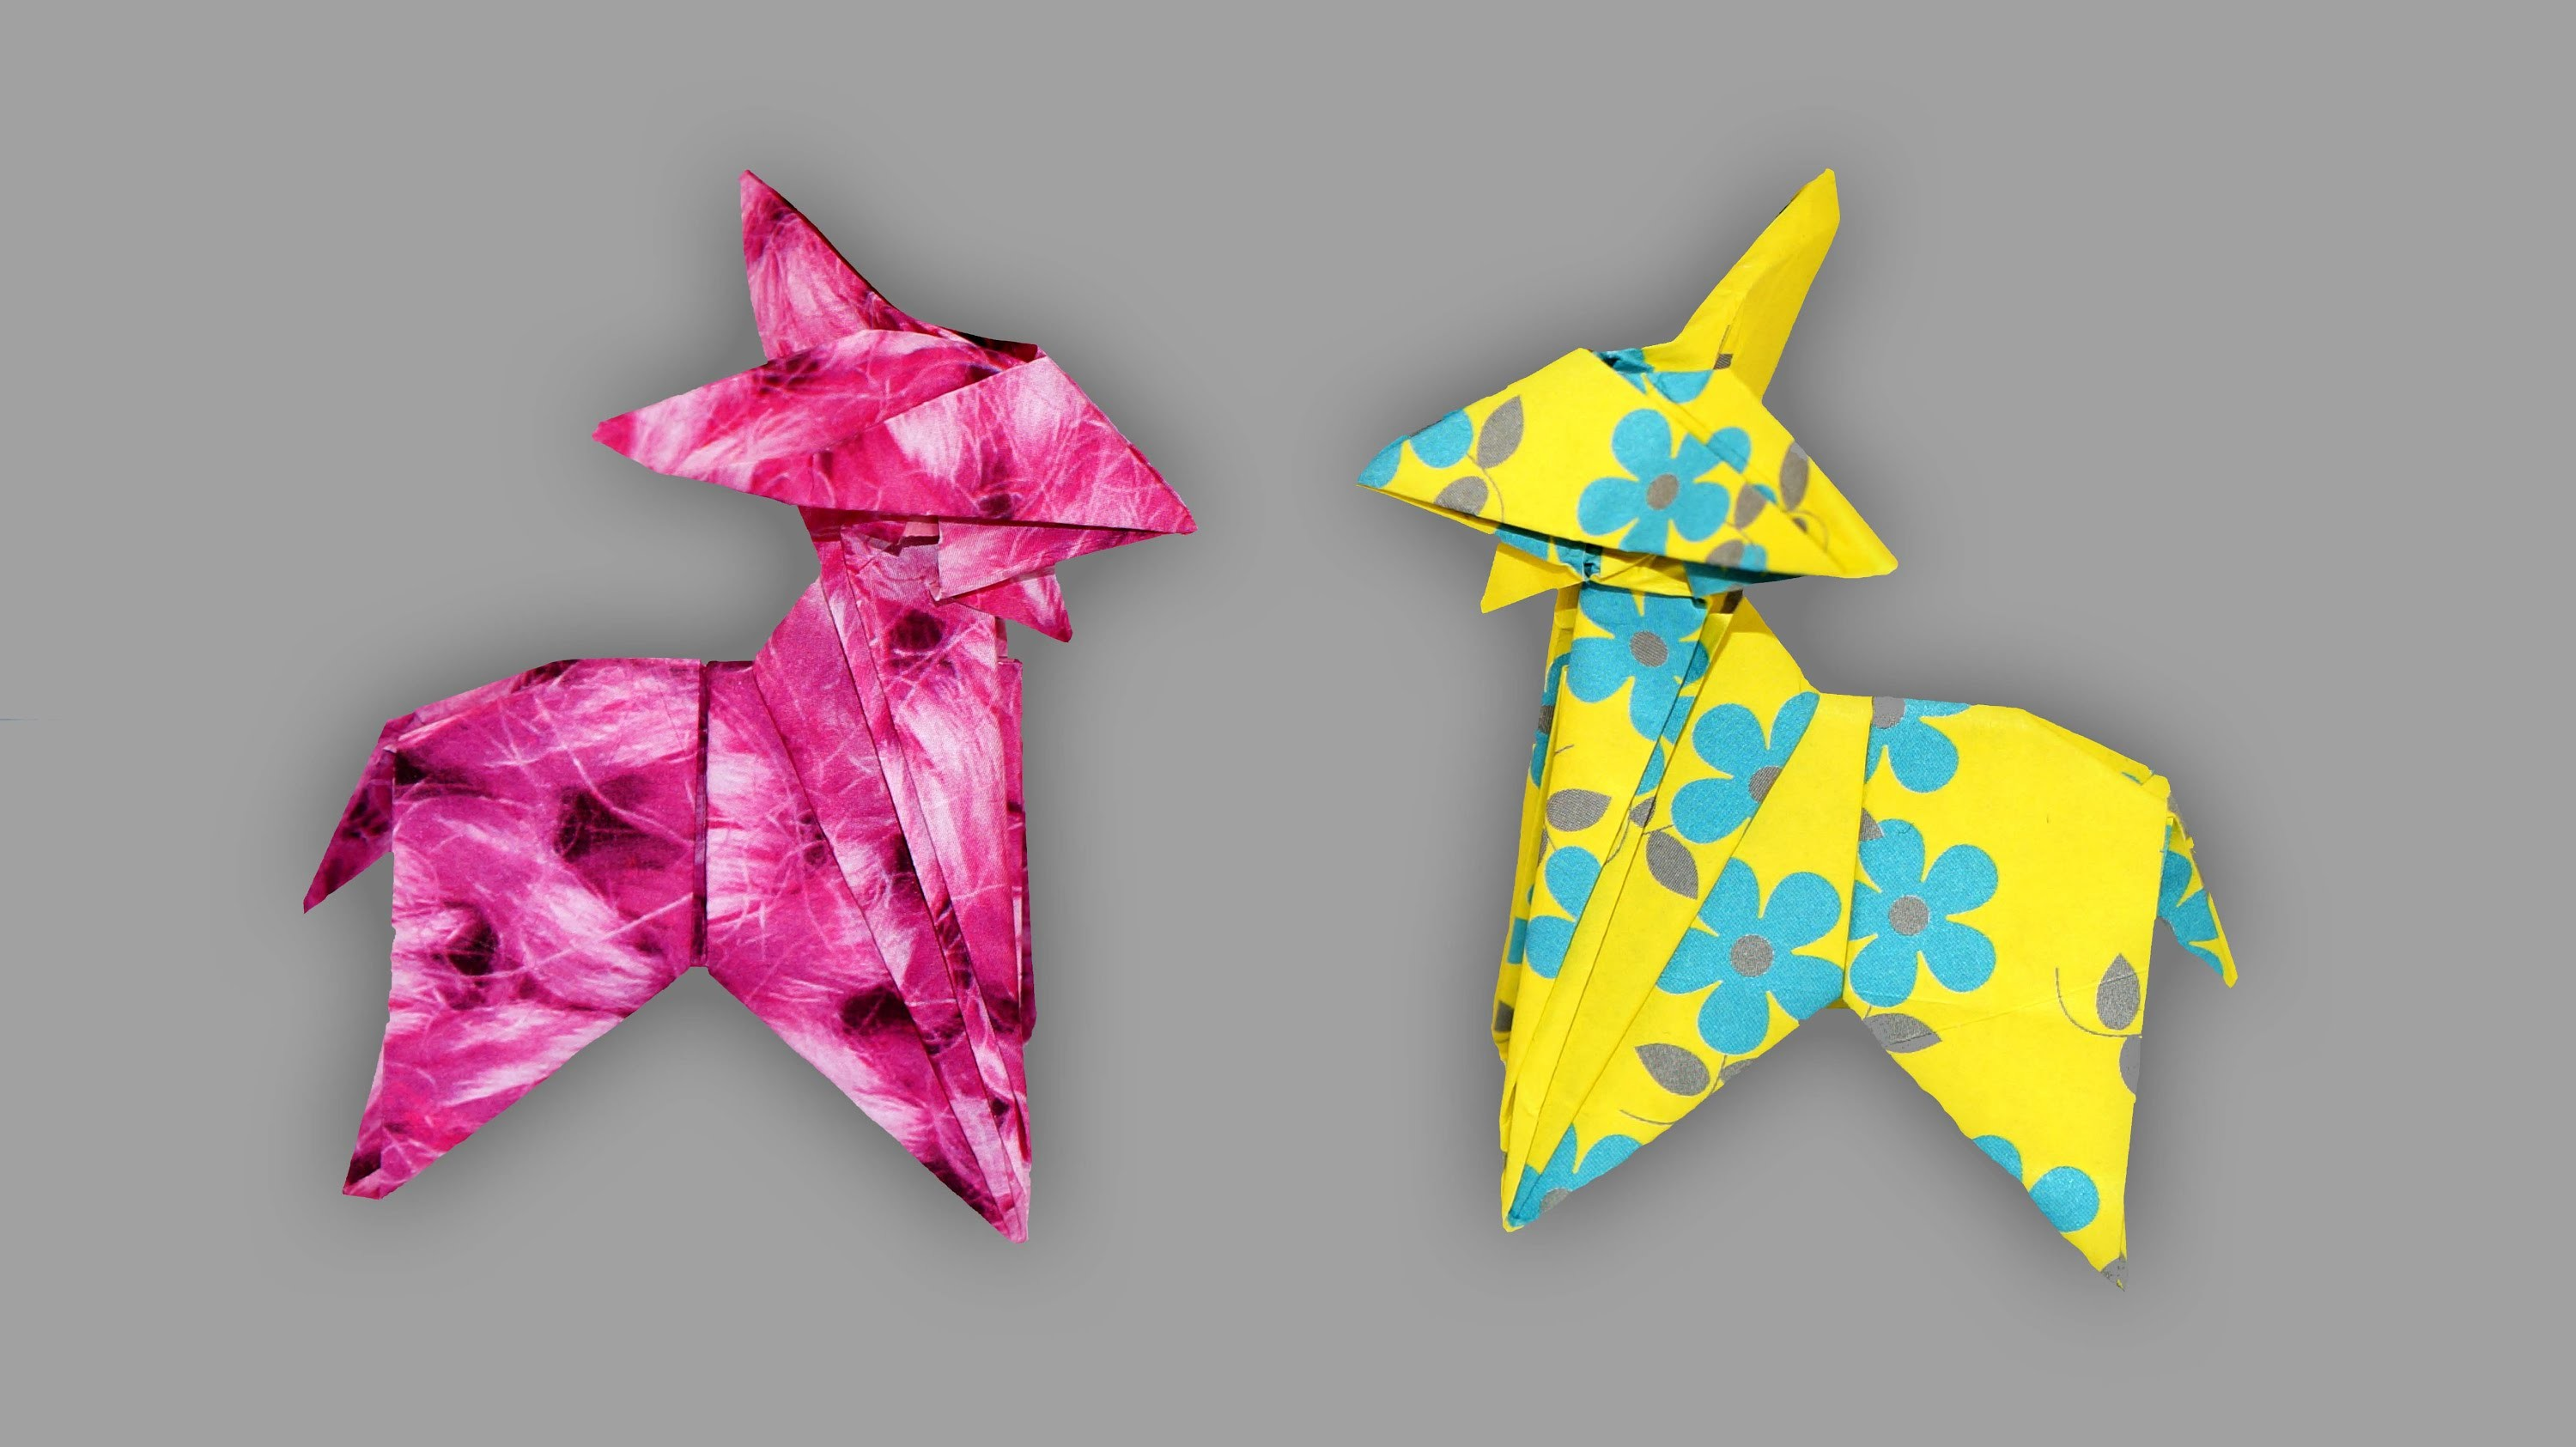 origami ziege goat faltanleitung live erkl rt my crafts and diy projects. Black Bedroom Furniture Sets. Home Design Ideas